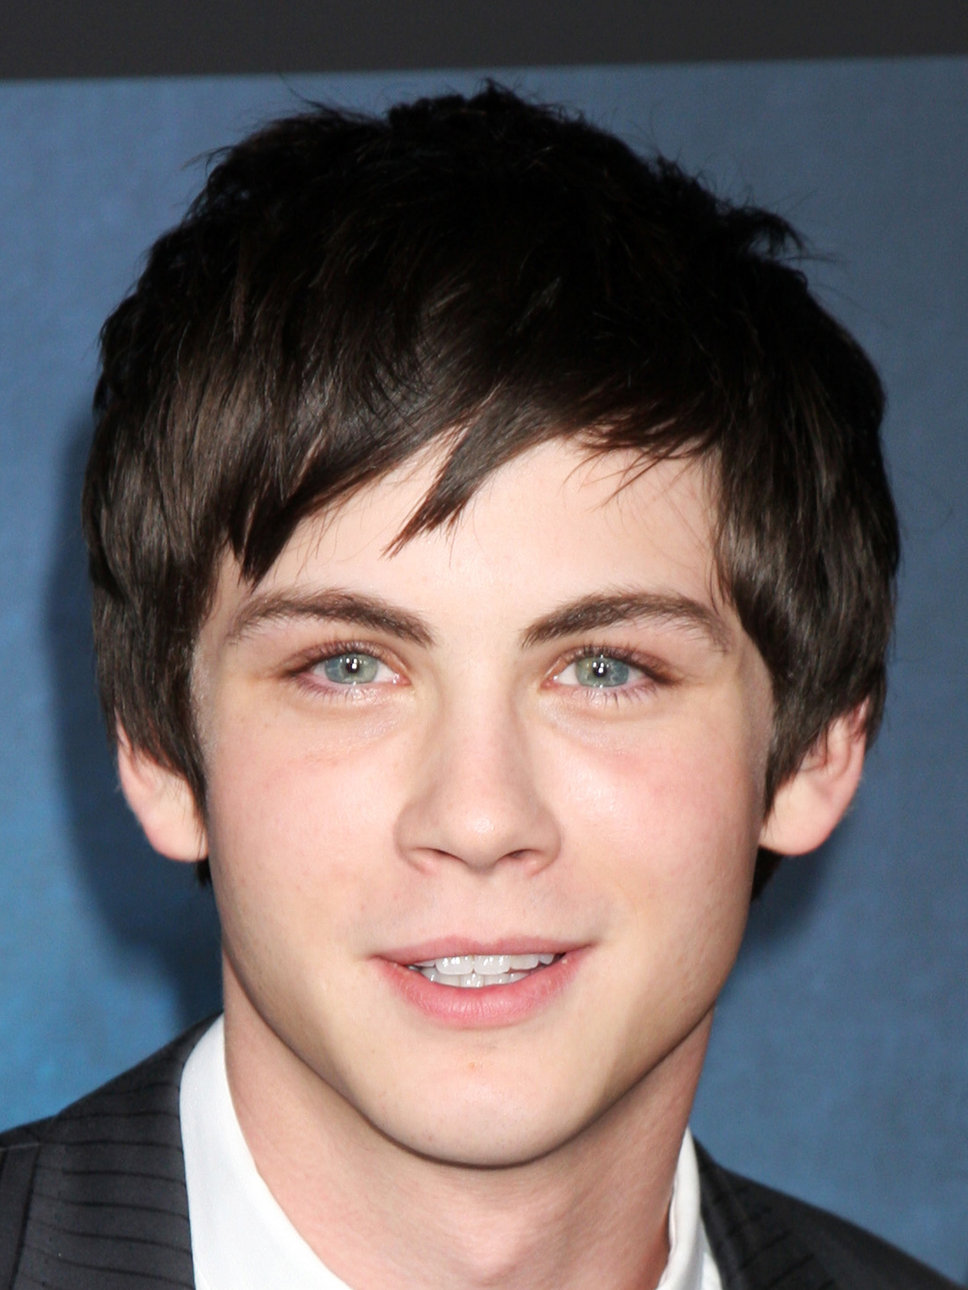 Fantastic Cool Hairstyles For Teenage Guys You Might Try Latest Hair Short Hairstyles For Black Women Fulllsitofus